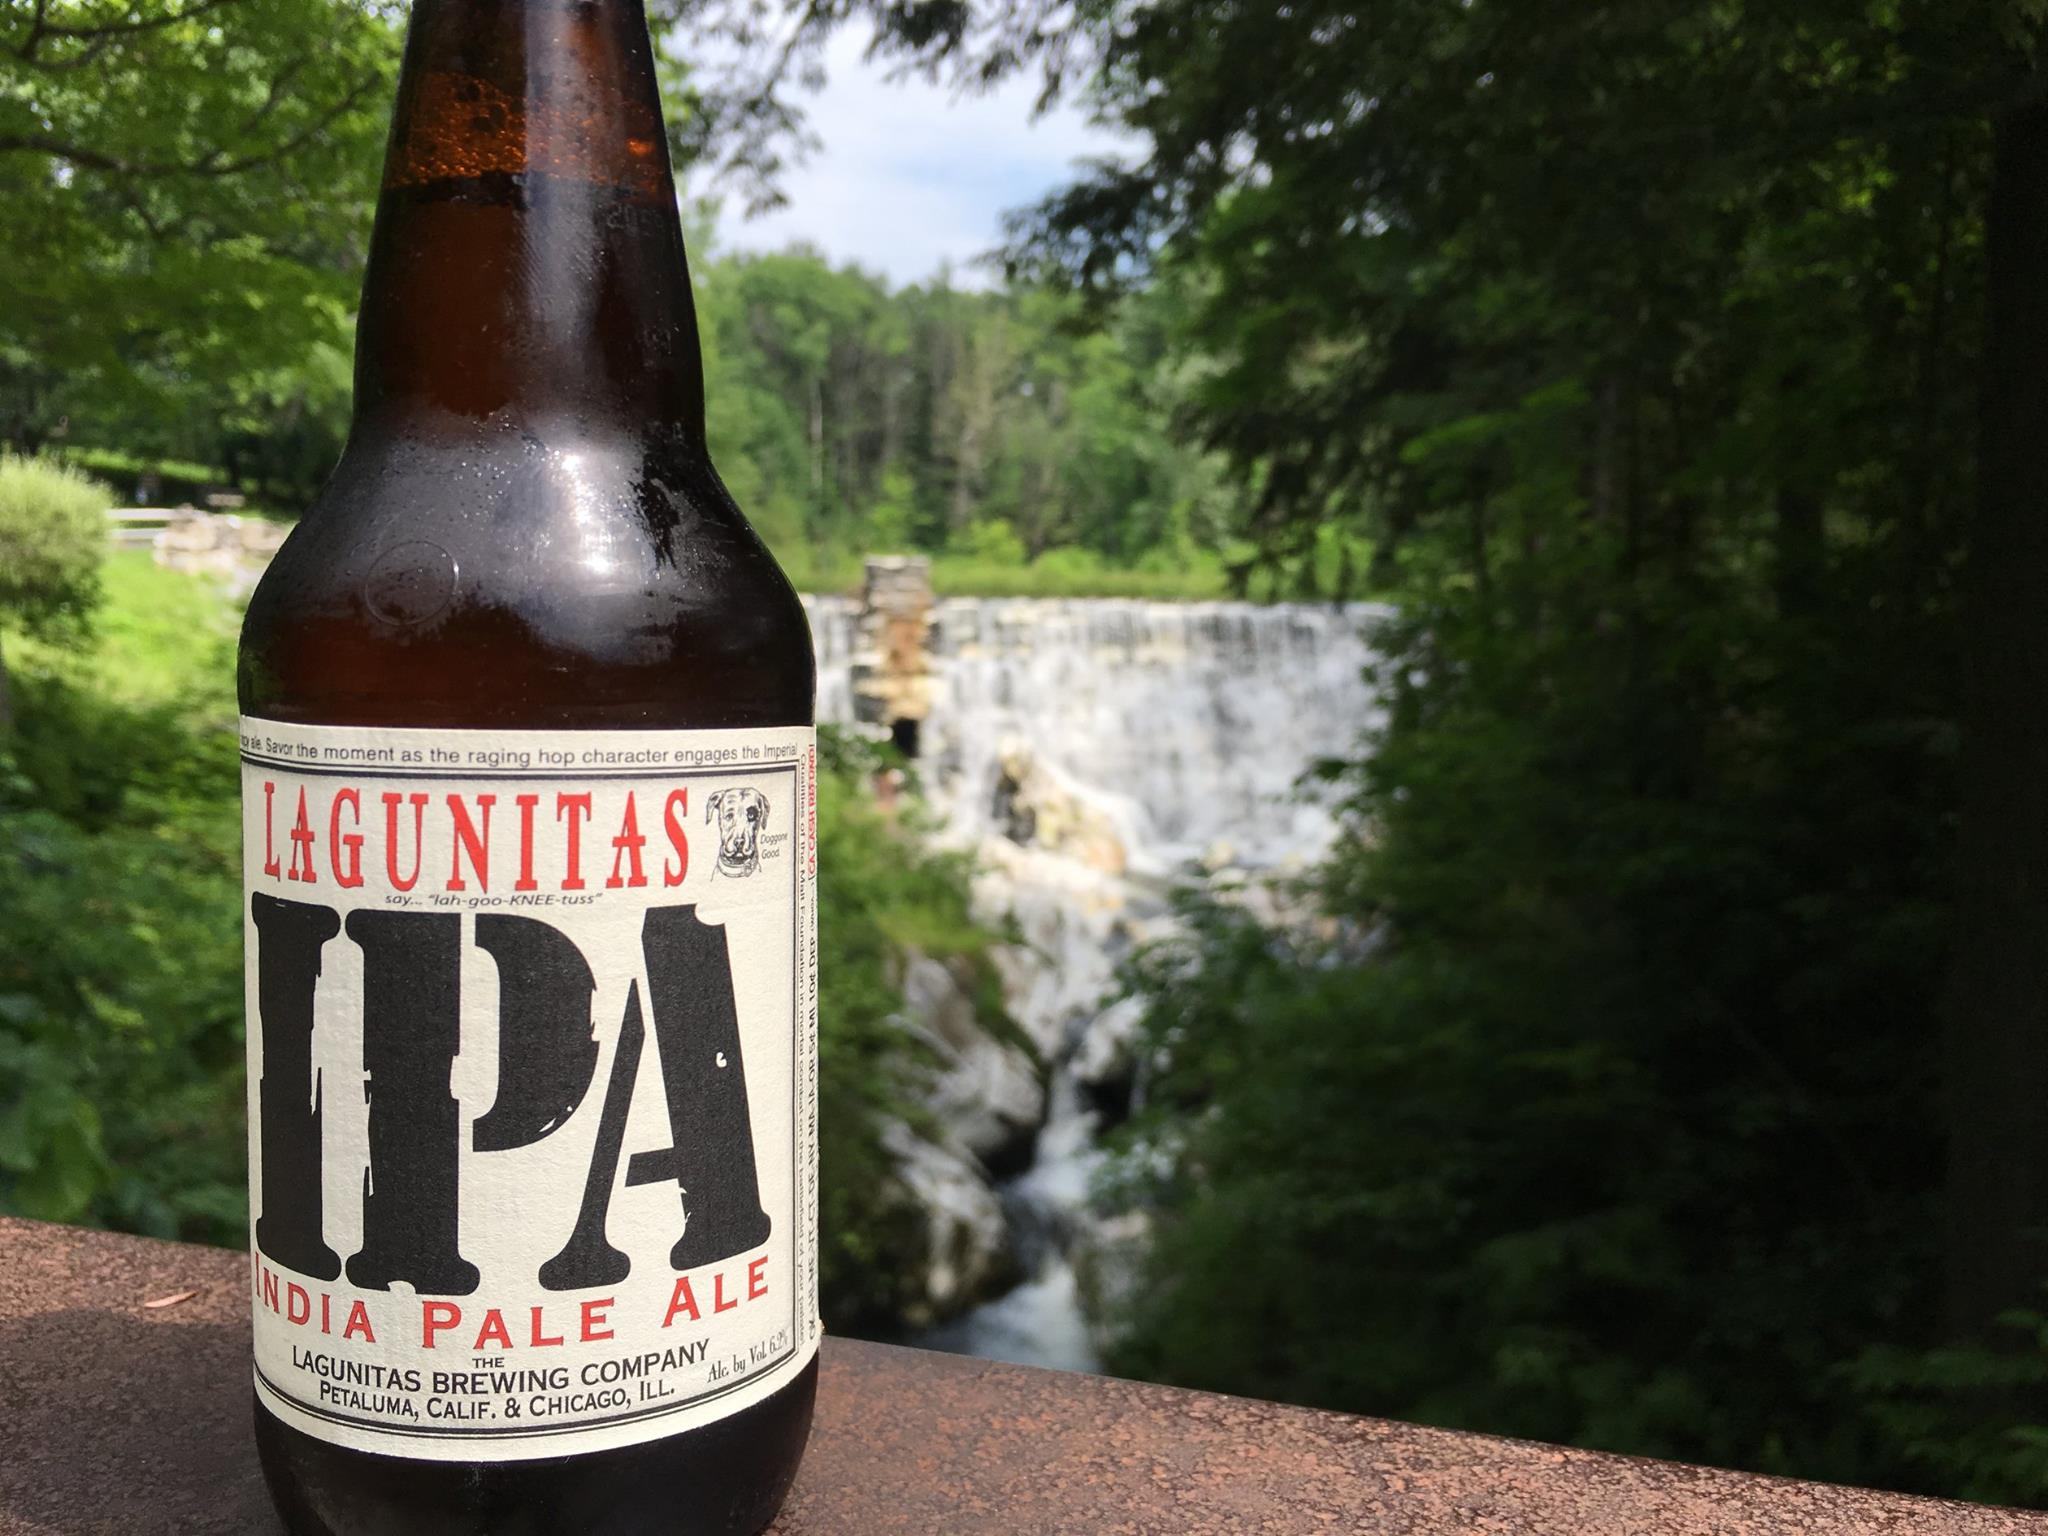 Lagunitas is Making Moves both in Azusa and Abroad